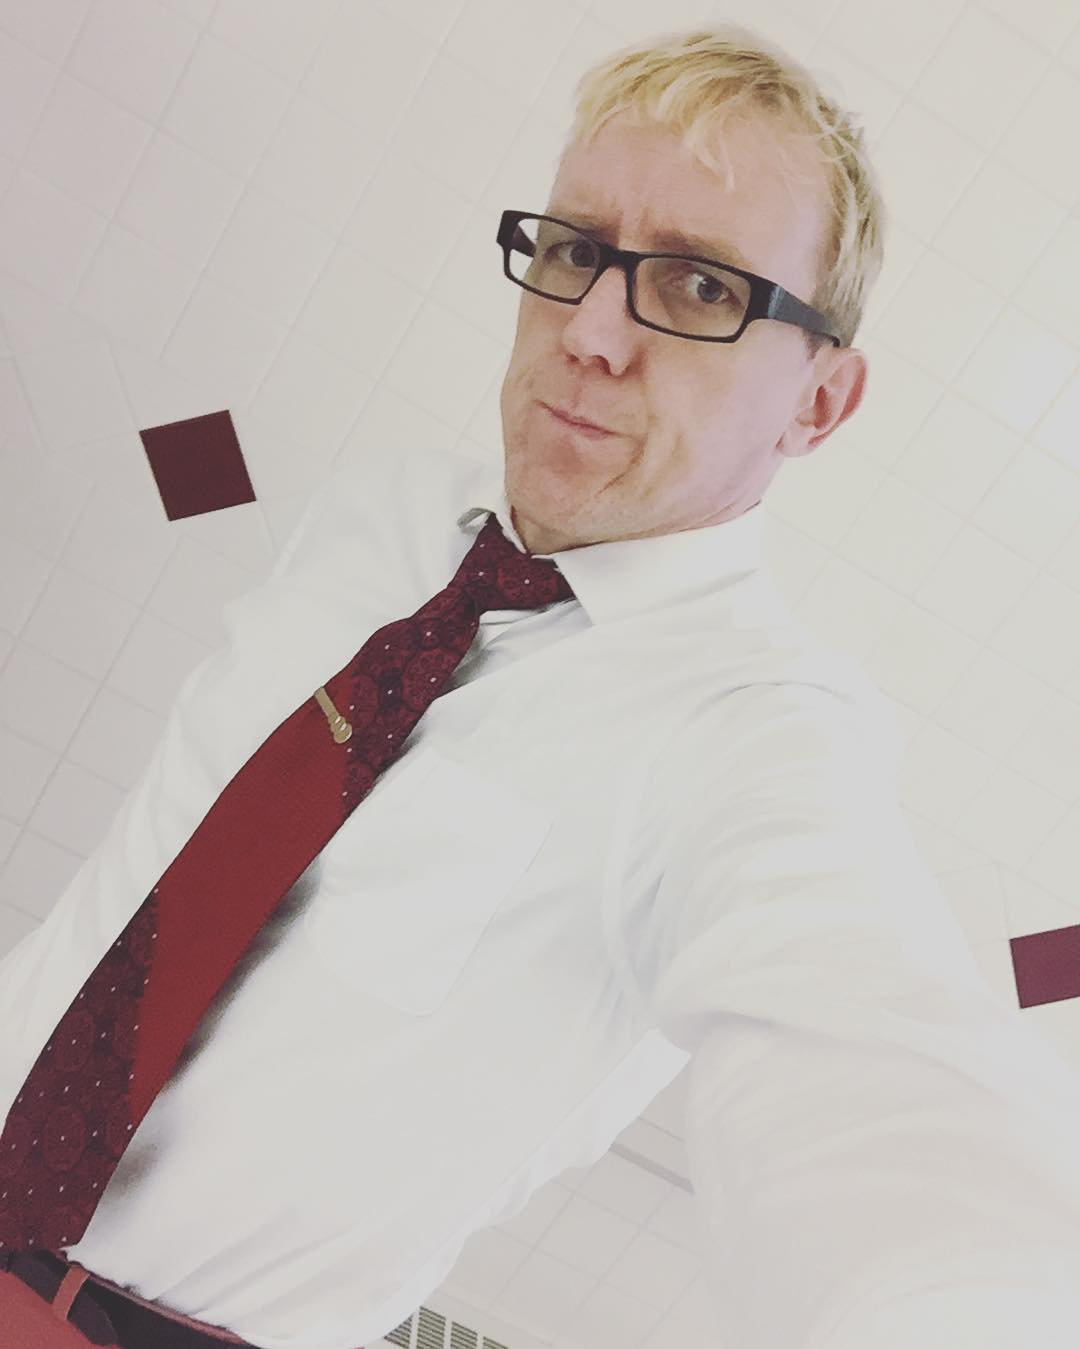 Missed #redfored so thought I would represent for #tiedayfriday